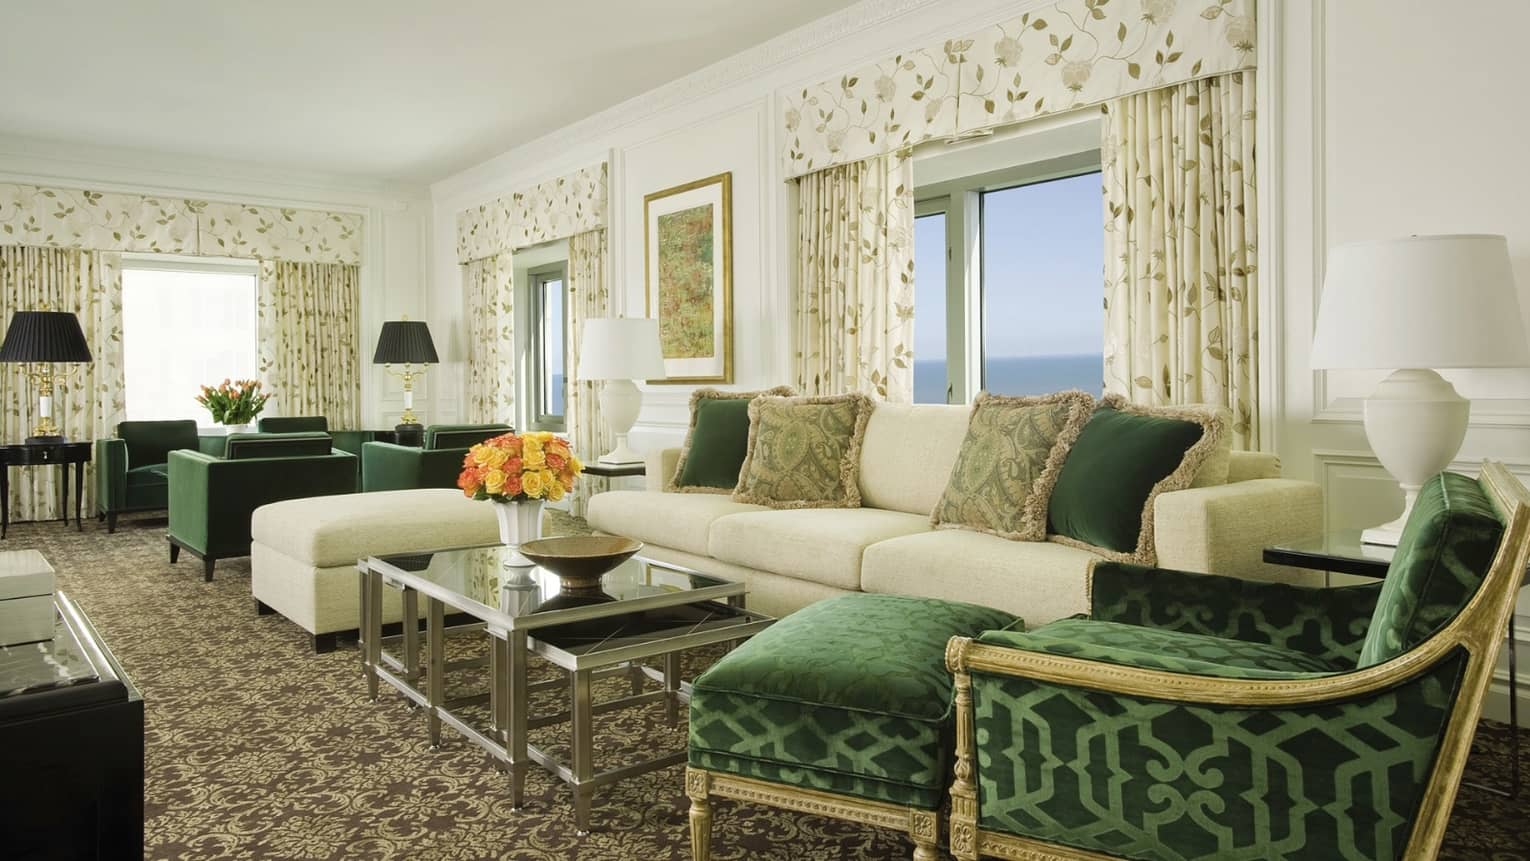 Presidential Suite living room with white sofa, ottoman, green accent pillows, elegant green chaise, green chairs, white curtains